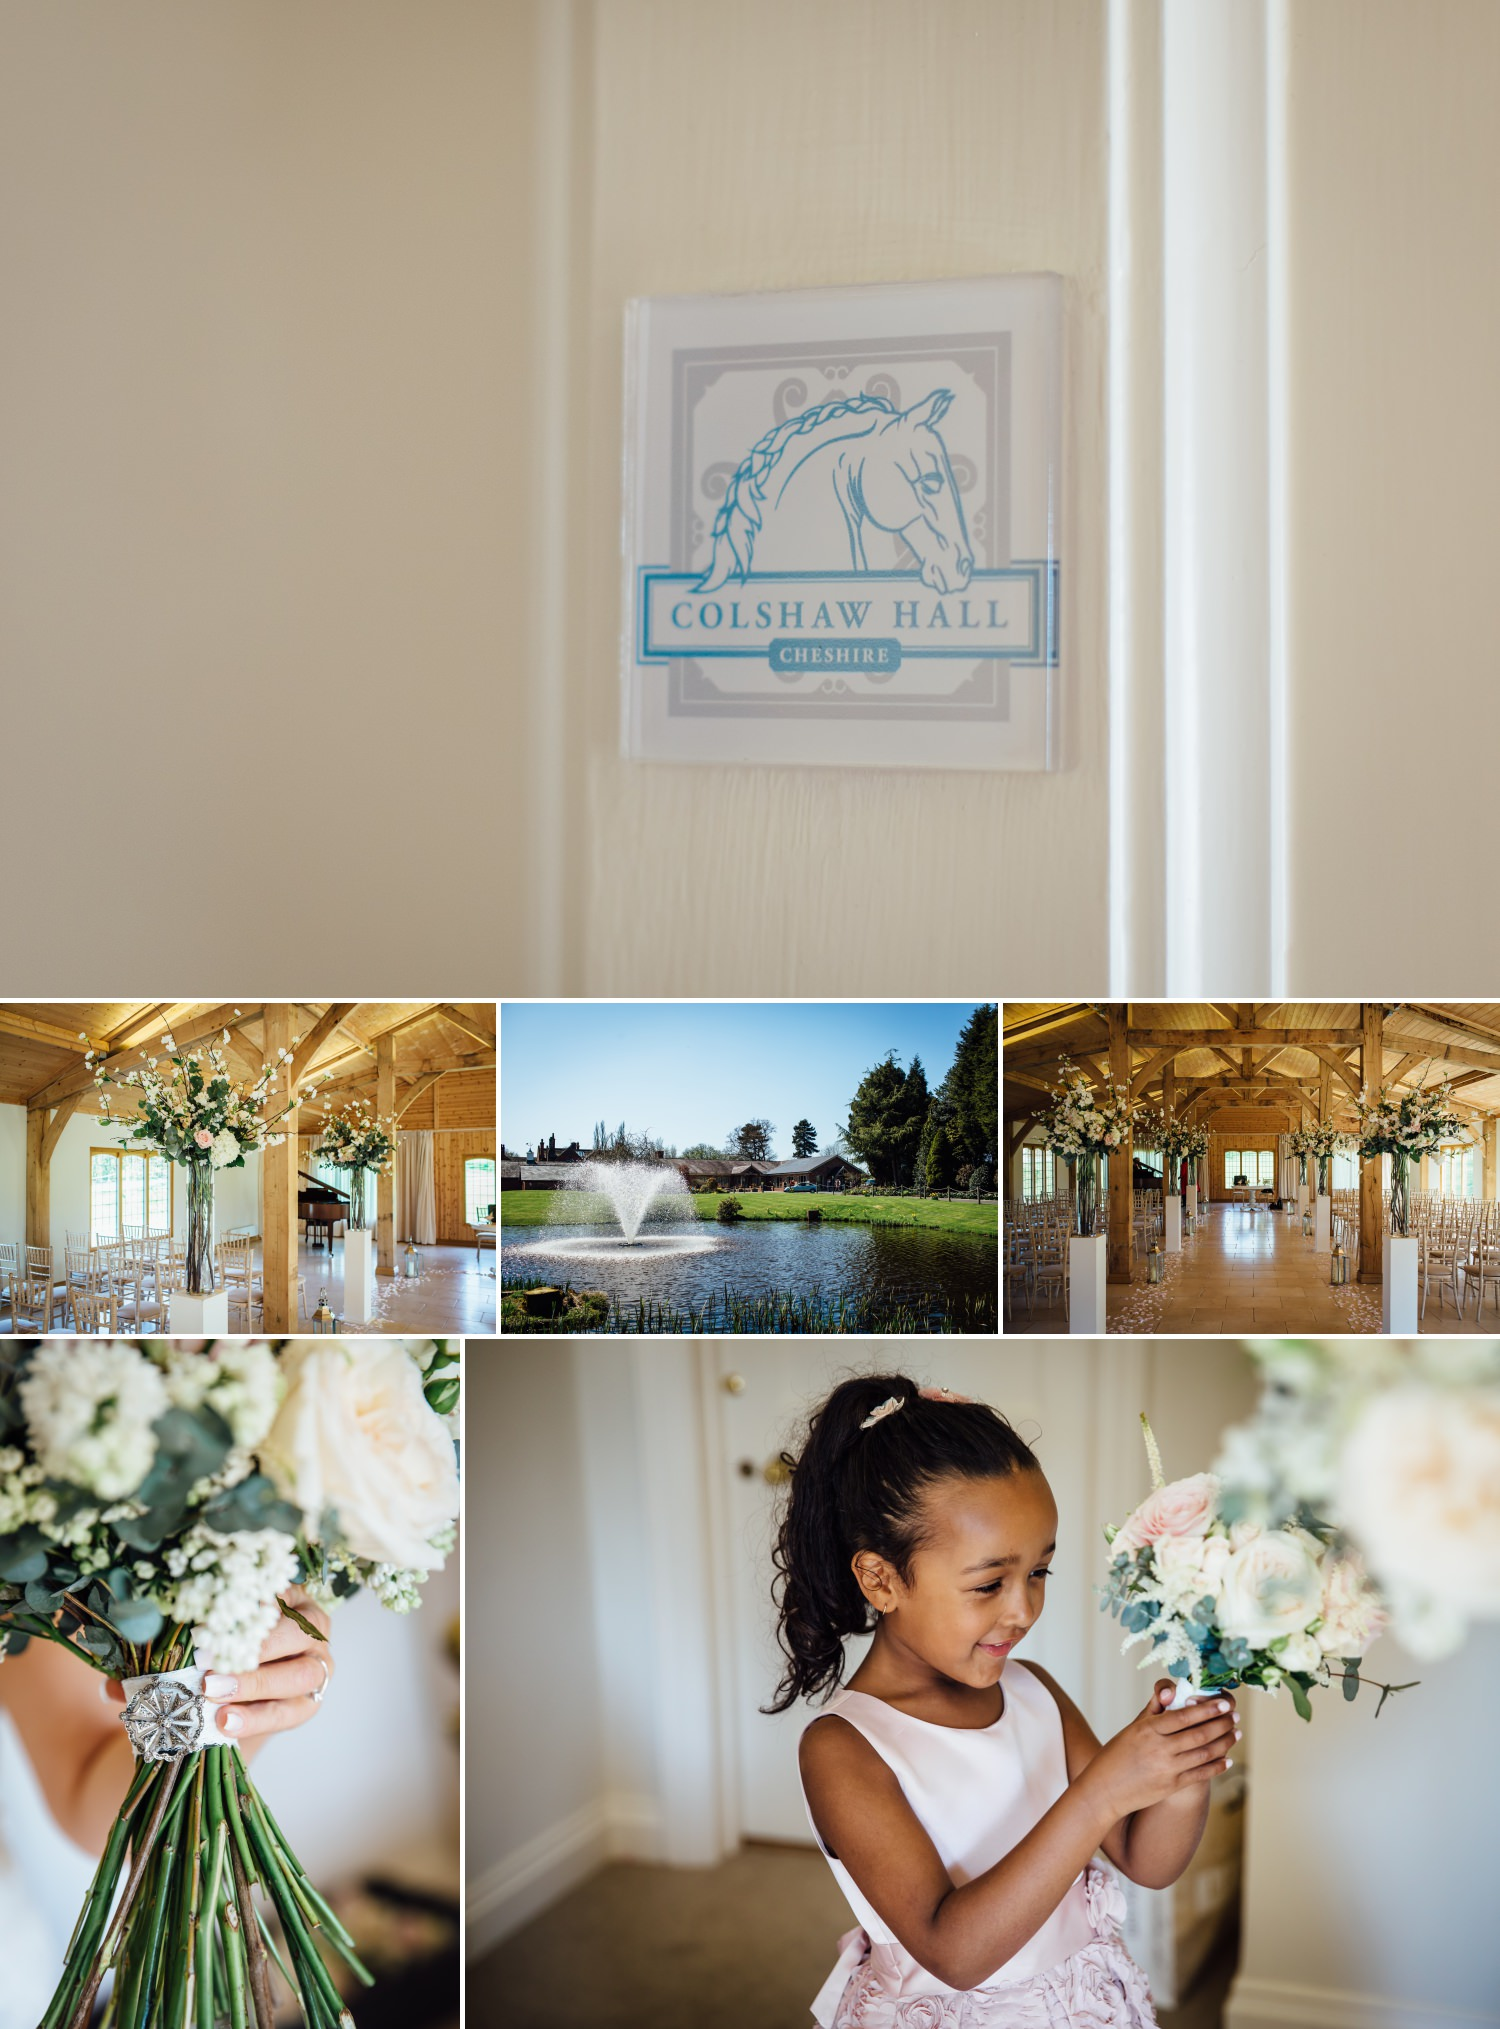 wedding photography detils of the Cheshire wedding venue Colshaw Hall